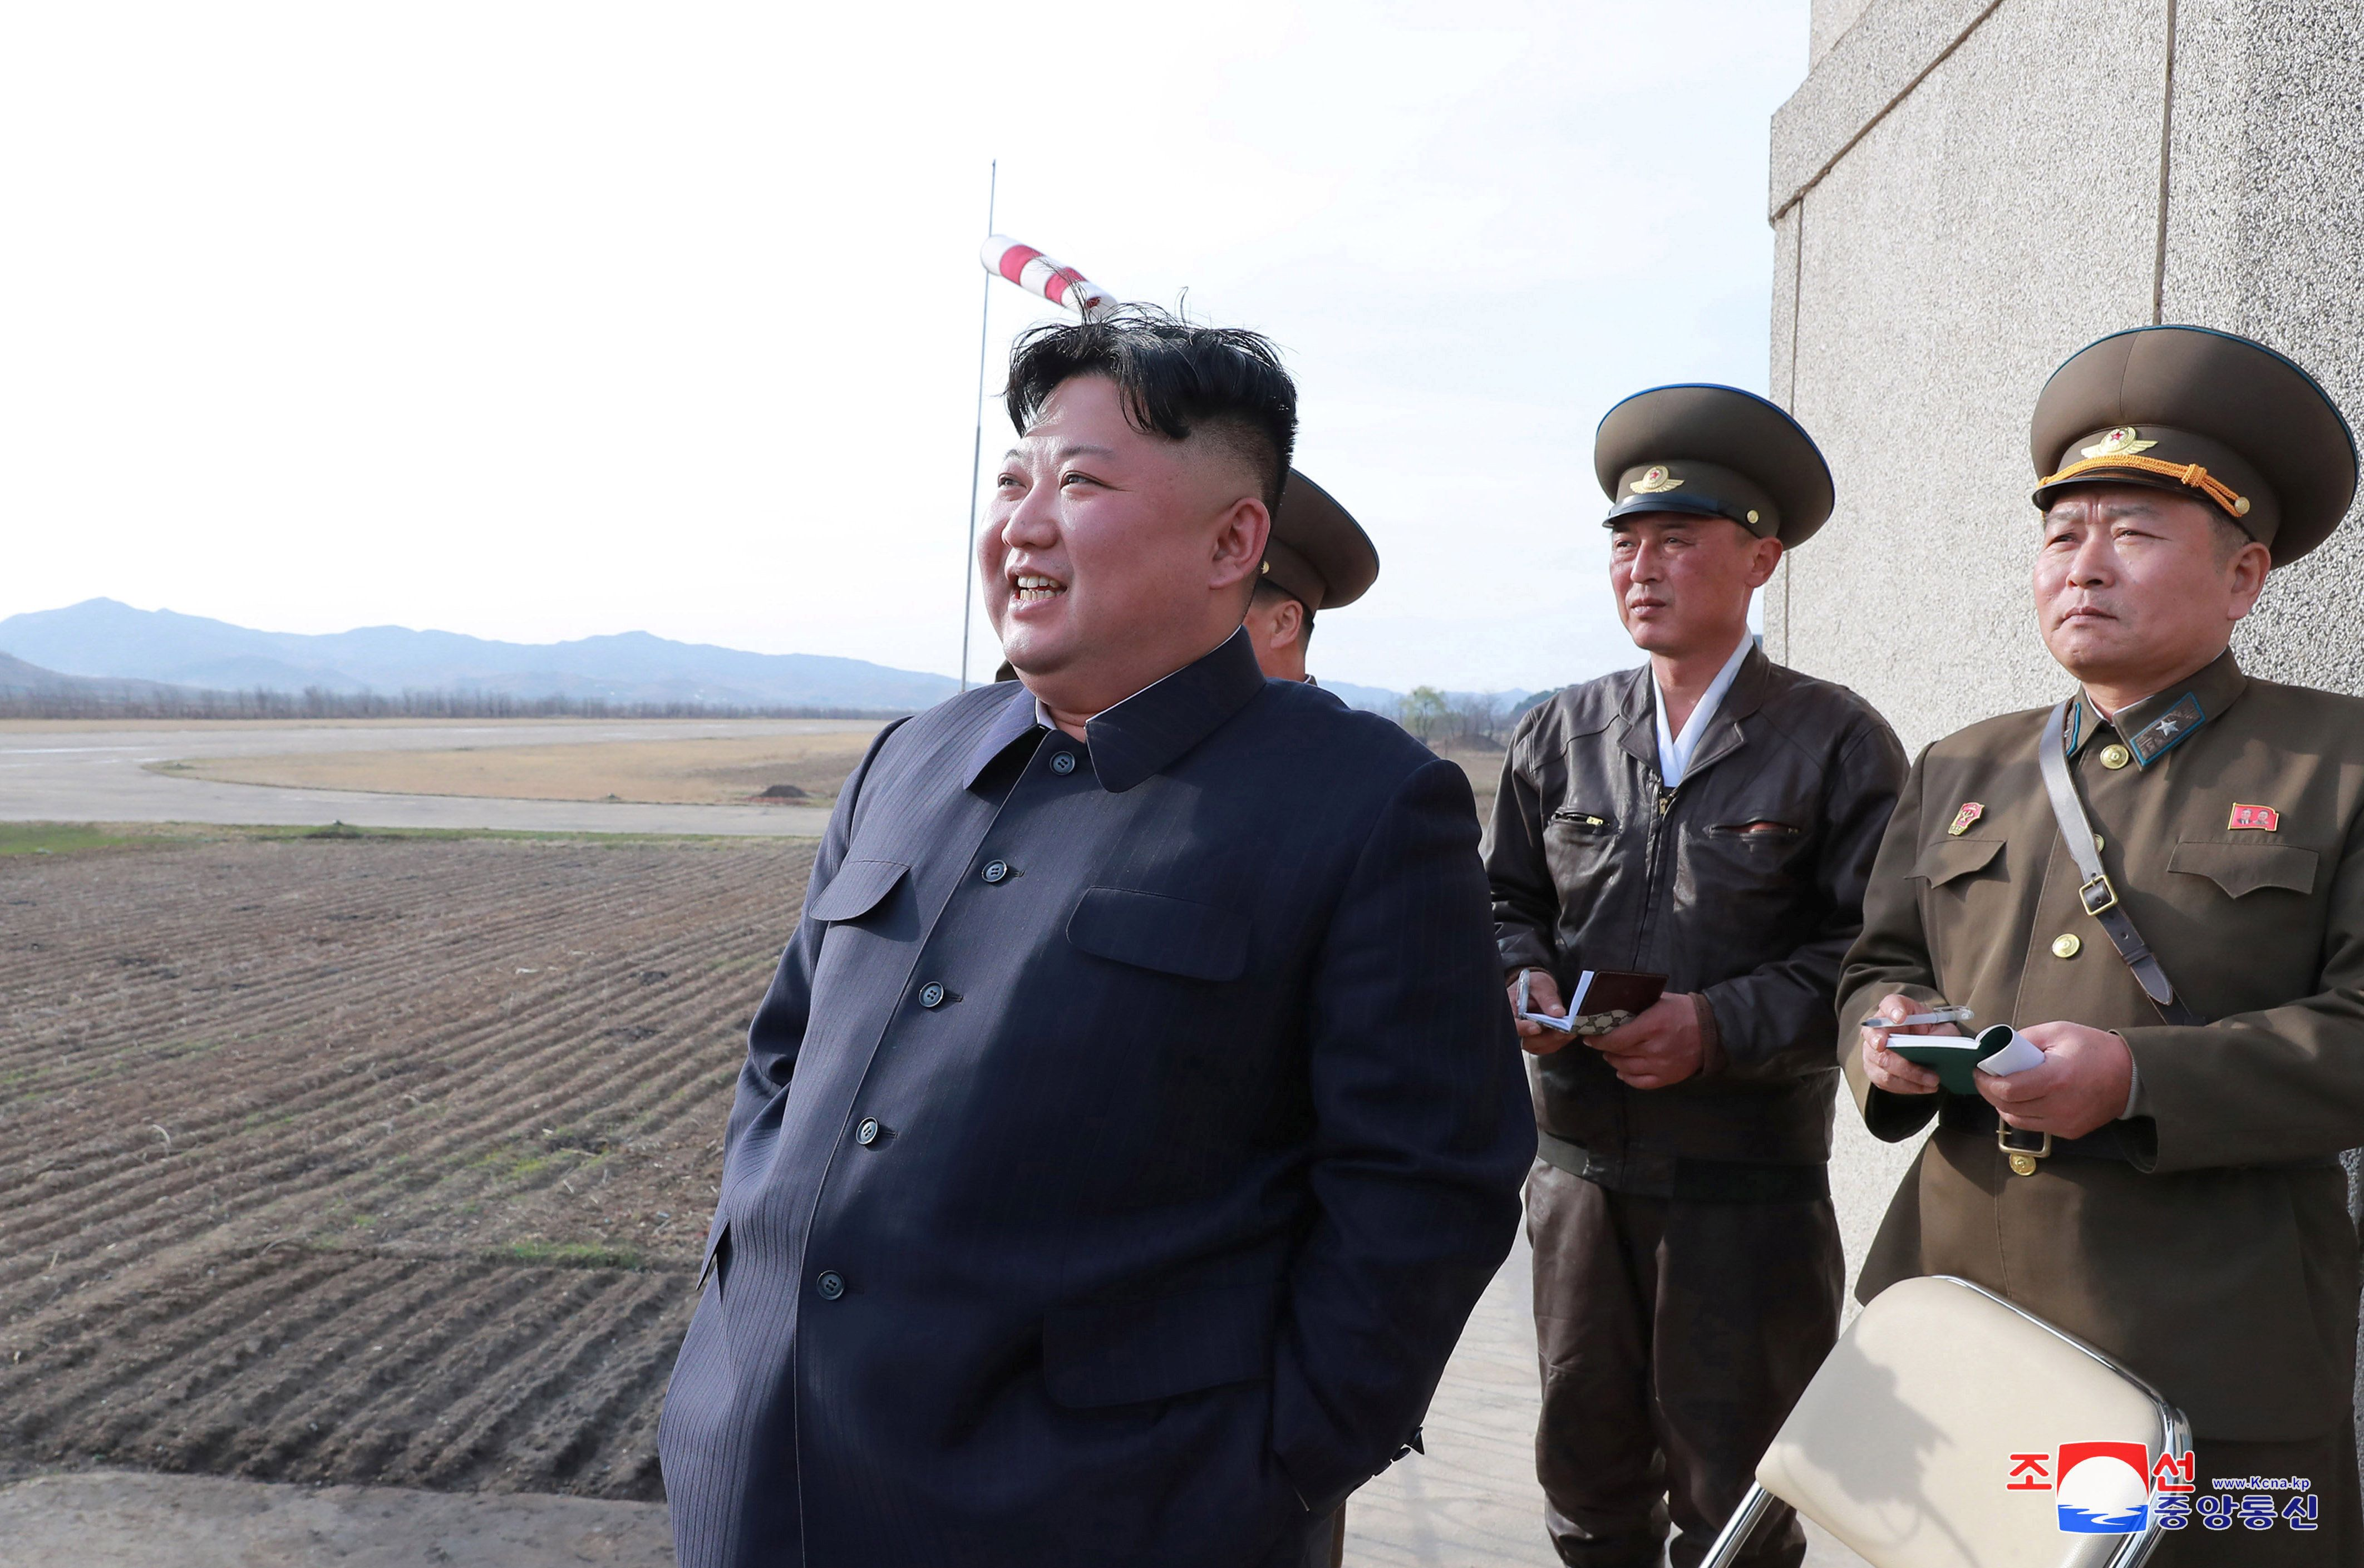 North Korean leader Kim Jong Un gives guidance while attending a flight training of Korean People's Army Air Force at undisclosed location in this April 16, 2019 photo released on April 17, 2019 by North Korea's Central News Agency (KCNA).    KCNA via REUTERS    ATTENTION EDITORS - THIS IMAGE WAS PROVIDED BY A THIRD PARTY. REUTERS IS UNABLE TO INDEPENDENTLY VERIFY THIS IMAGE. NO THIRD PARTY SALES. SOUTH KOREA OUT. NO COMMERCIAL OR EDITORIAL SALES IN SOUTH KOREA.